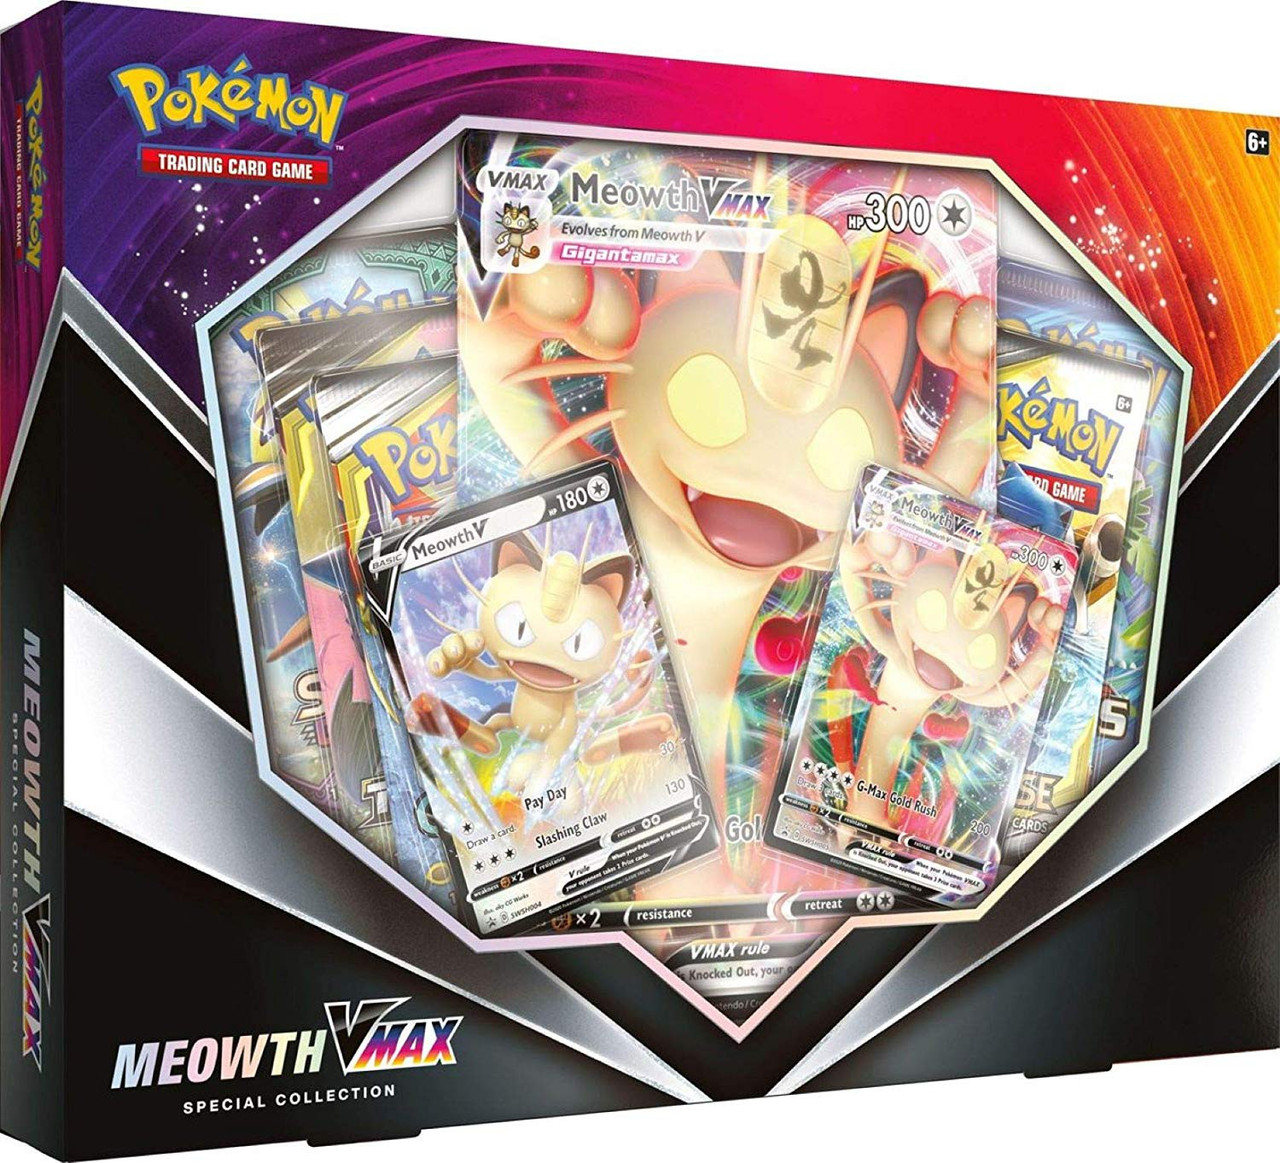 Pokemon Trading Card Game Sword Shield Meowth Vmax Special Collection Box